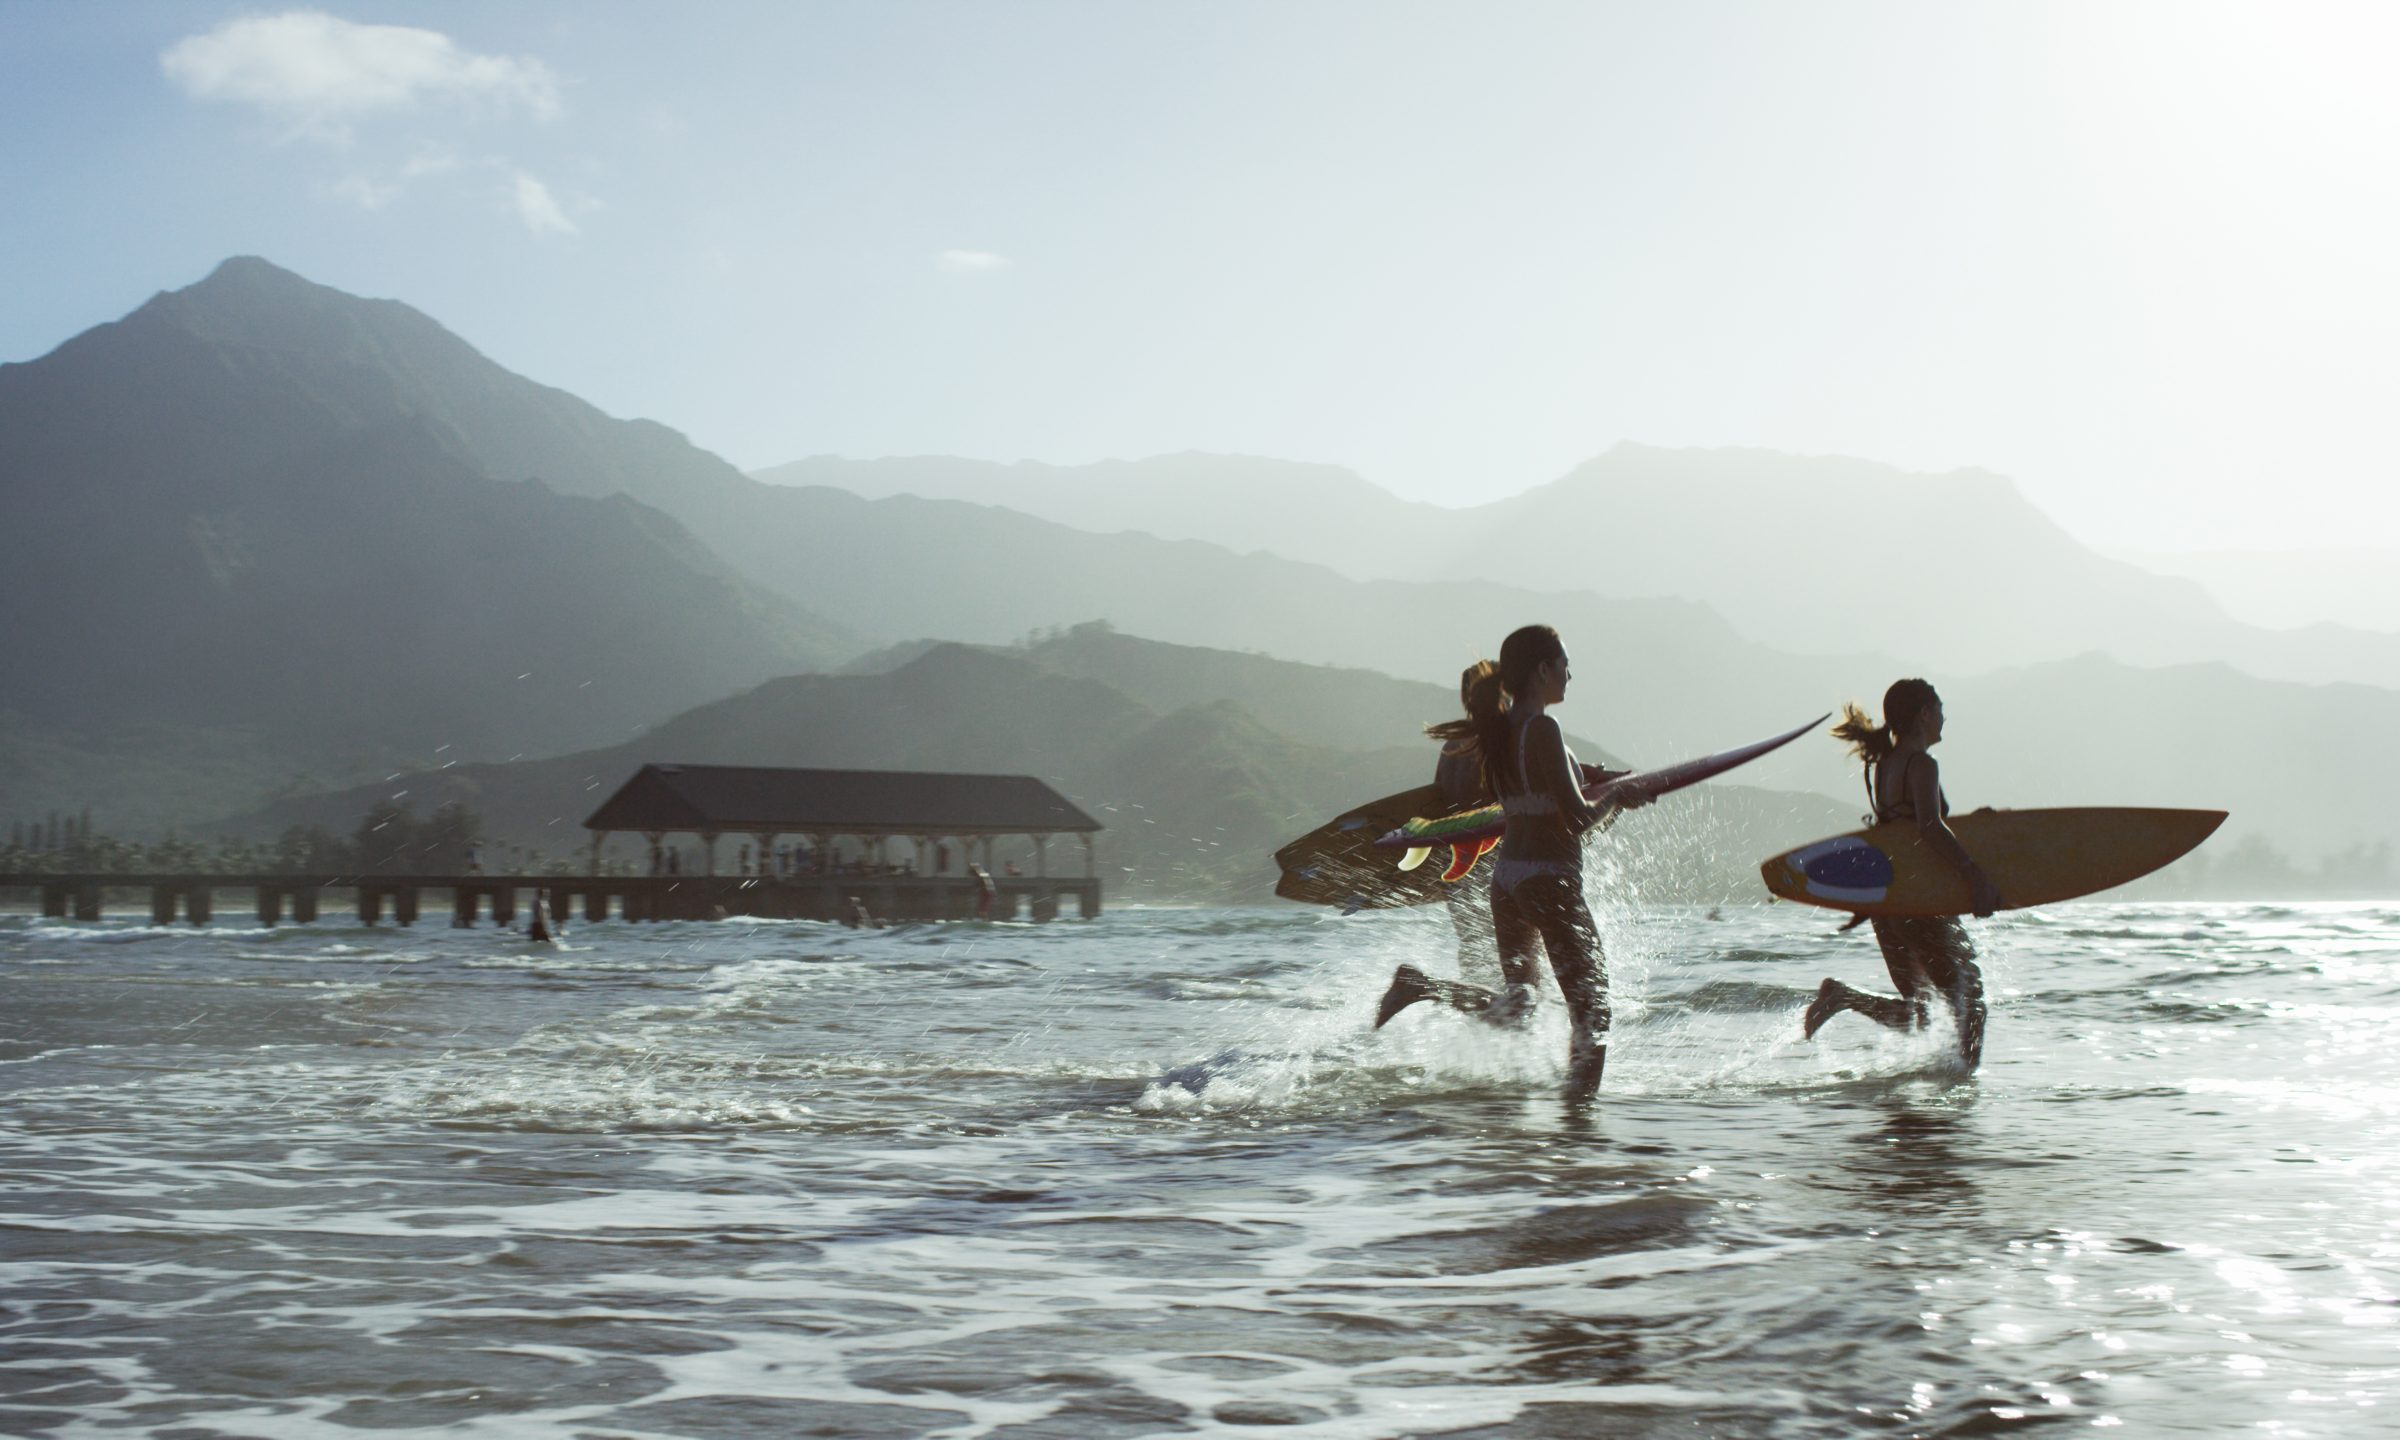 Southwest to Launch New Routes to Hawaii in June